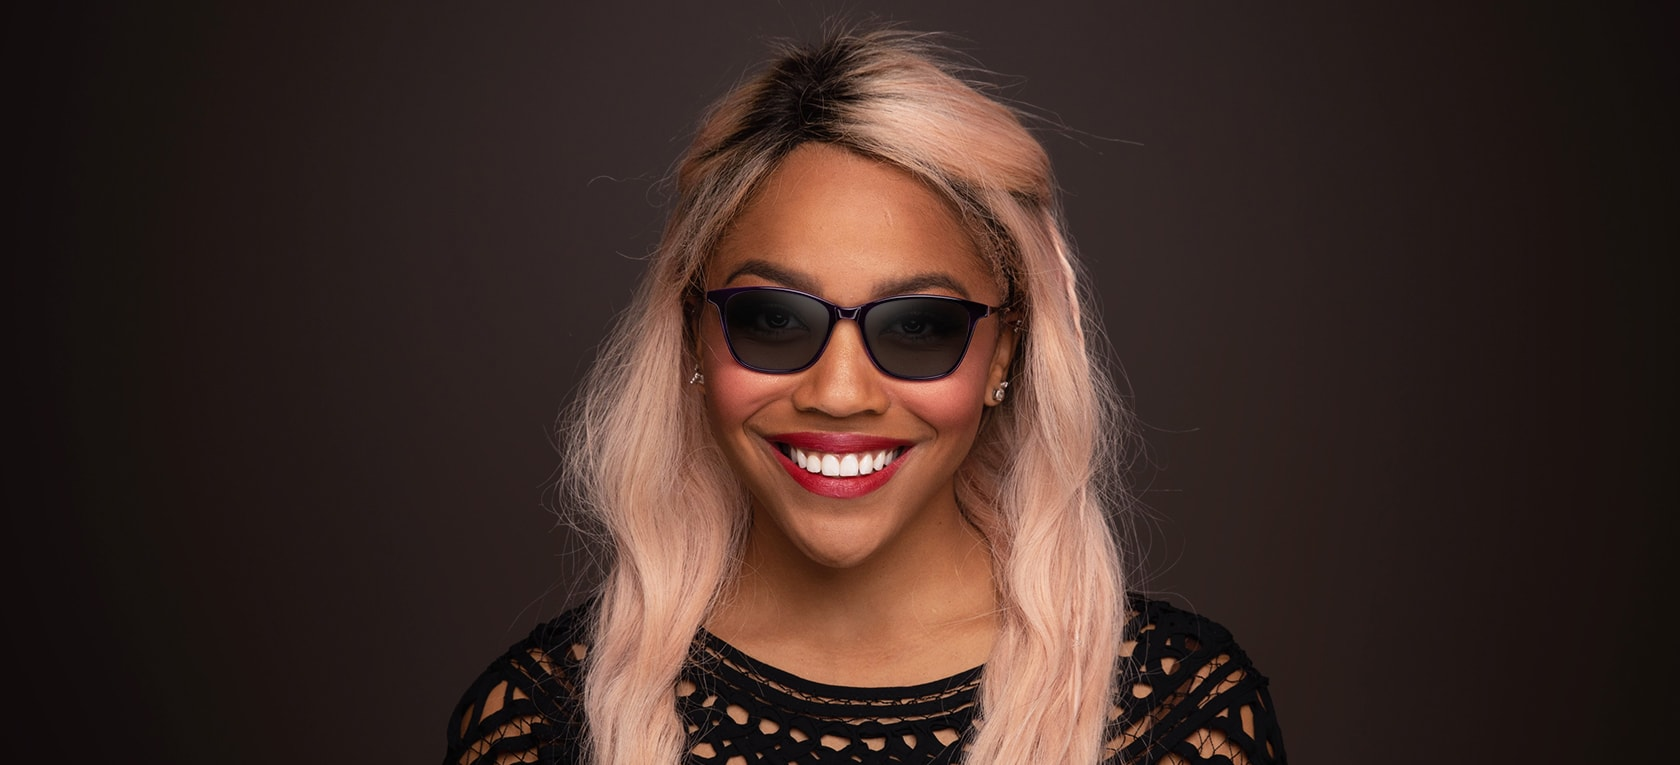 Image of model wearing Siena frames